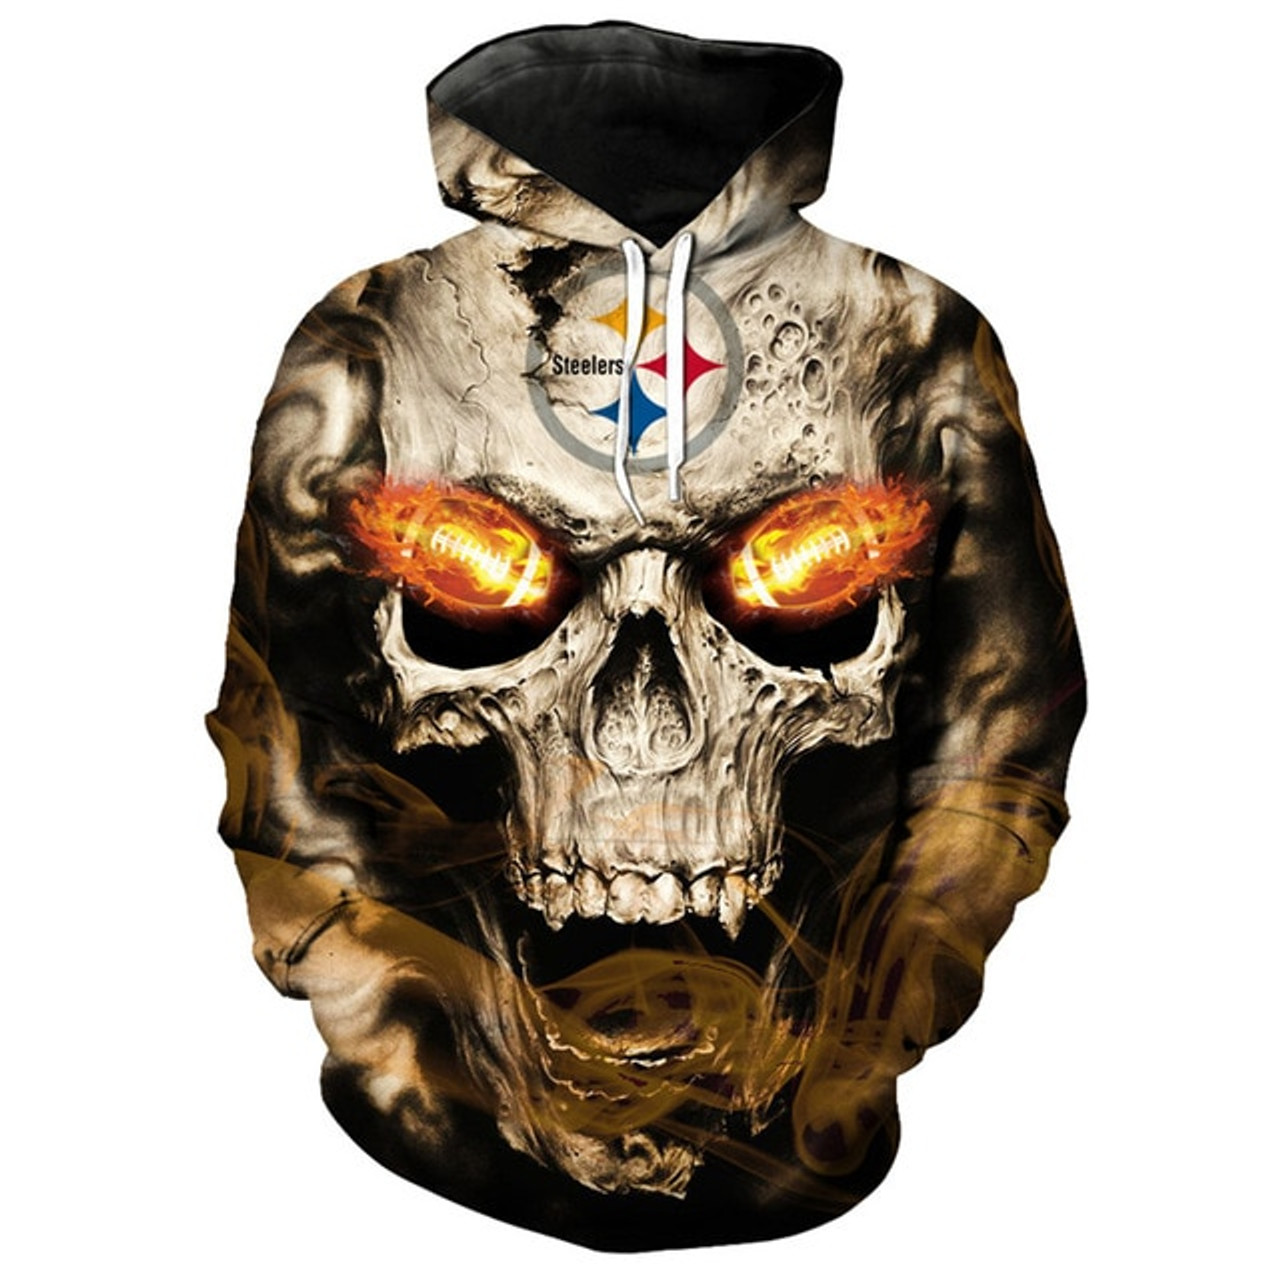 new arrival 01ecd f8a31 **(OFFICIALLY-LICENSED-N.F.L.PITTSBURGH-STEELERS,TRENDY-PULLOVER-HOODIES &  NEON-GLOWING-FIERY-STEELERS-FOOTBALL-EYES,NICE-CUSTOM-3D-GRAPHIC-PRINTED-AL...